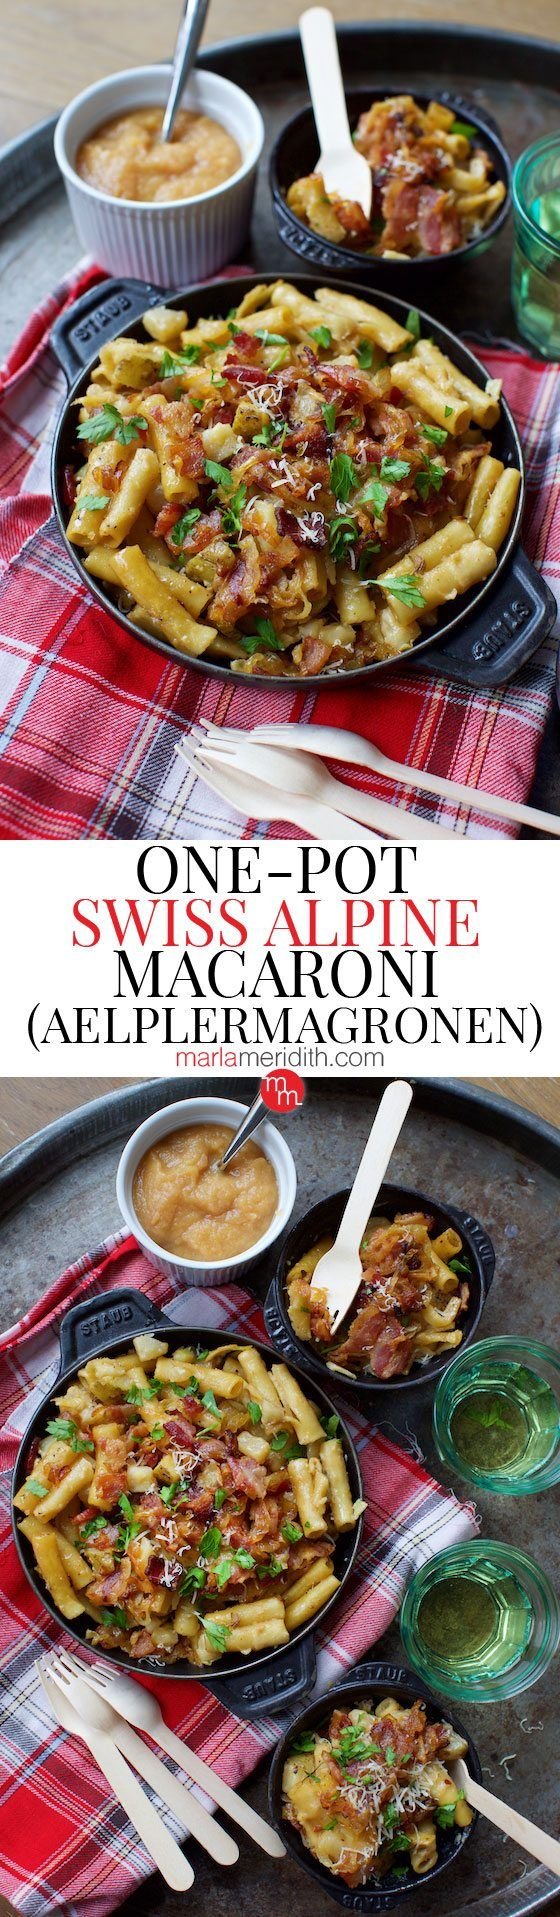 One-Pot Swiss Alpine Macaroni (Aelplermagronen) recipe. Mountain comfort food. Great for apres ski! MarlaMeridith.com ( @marlameridith )